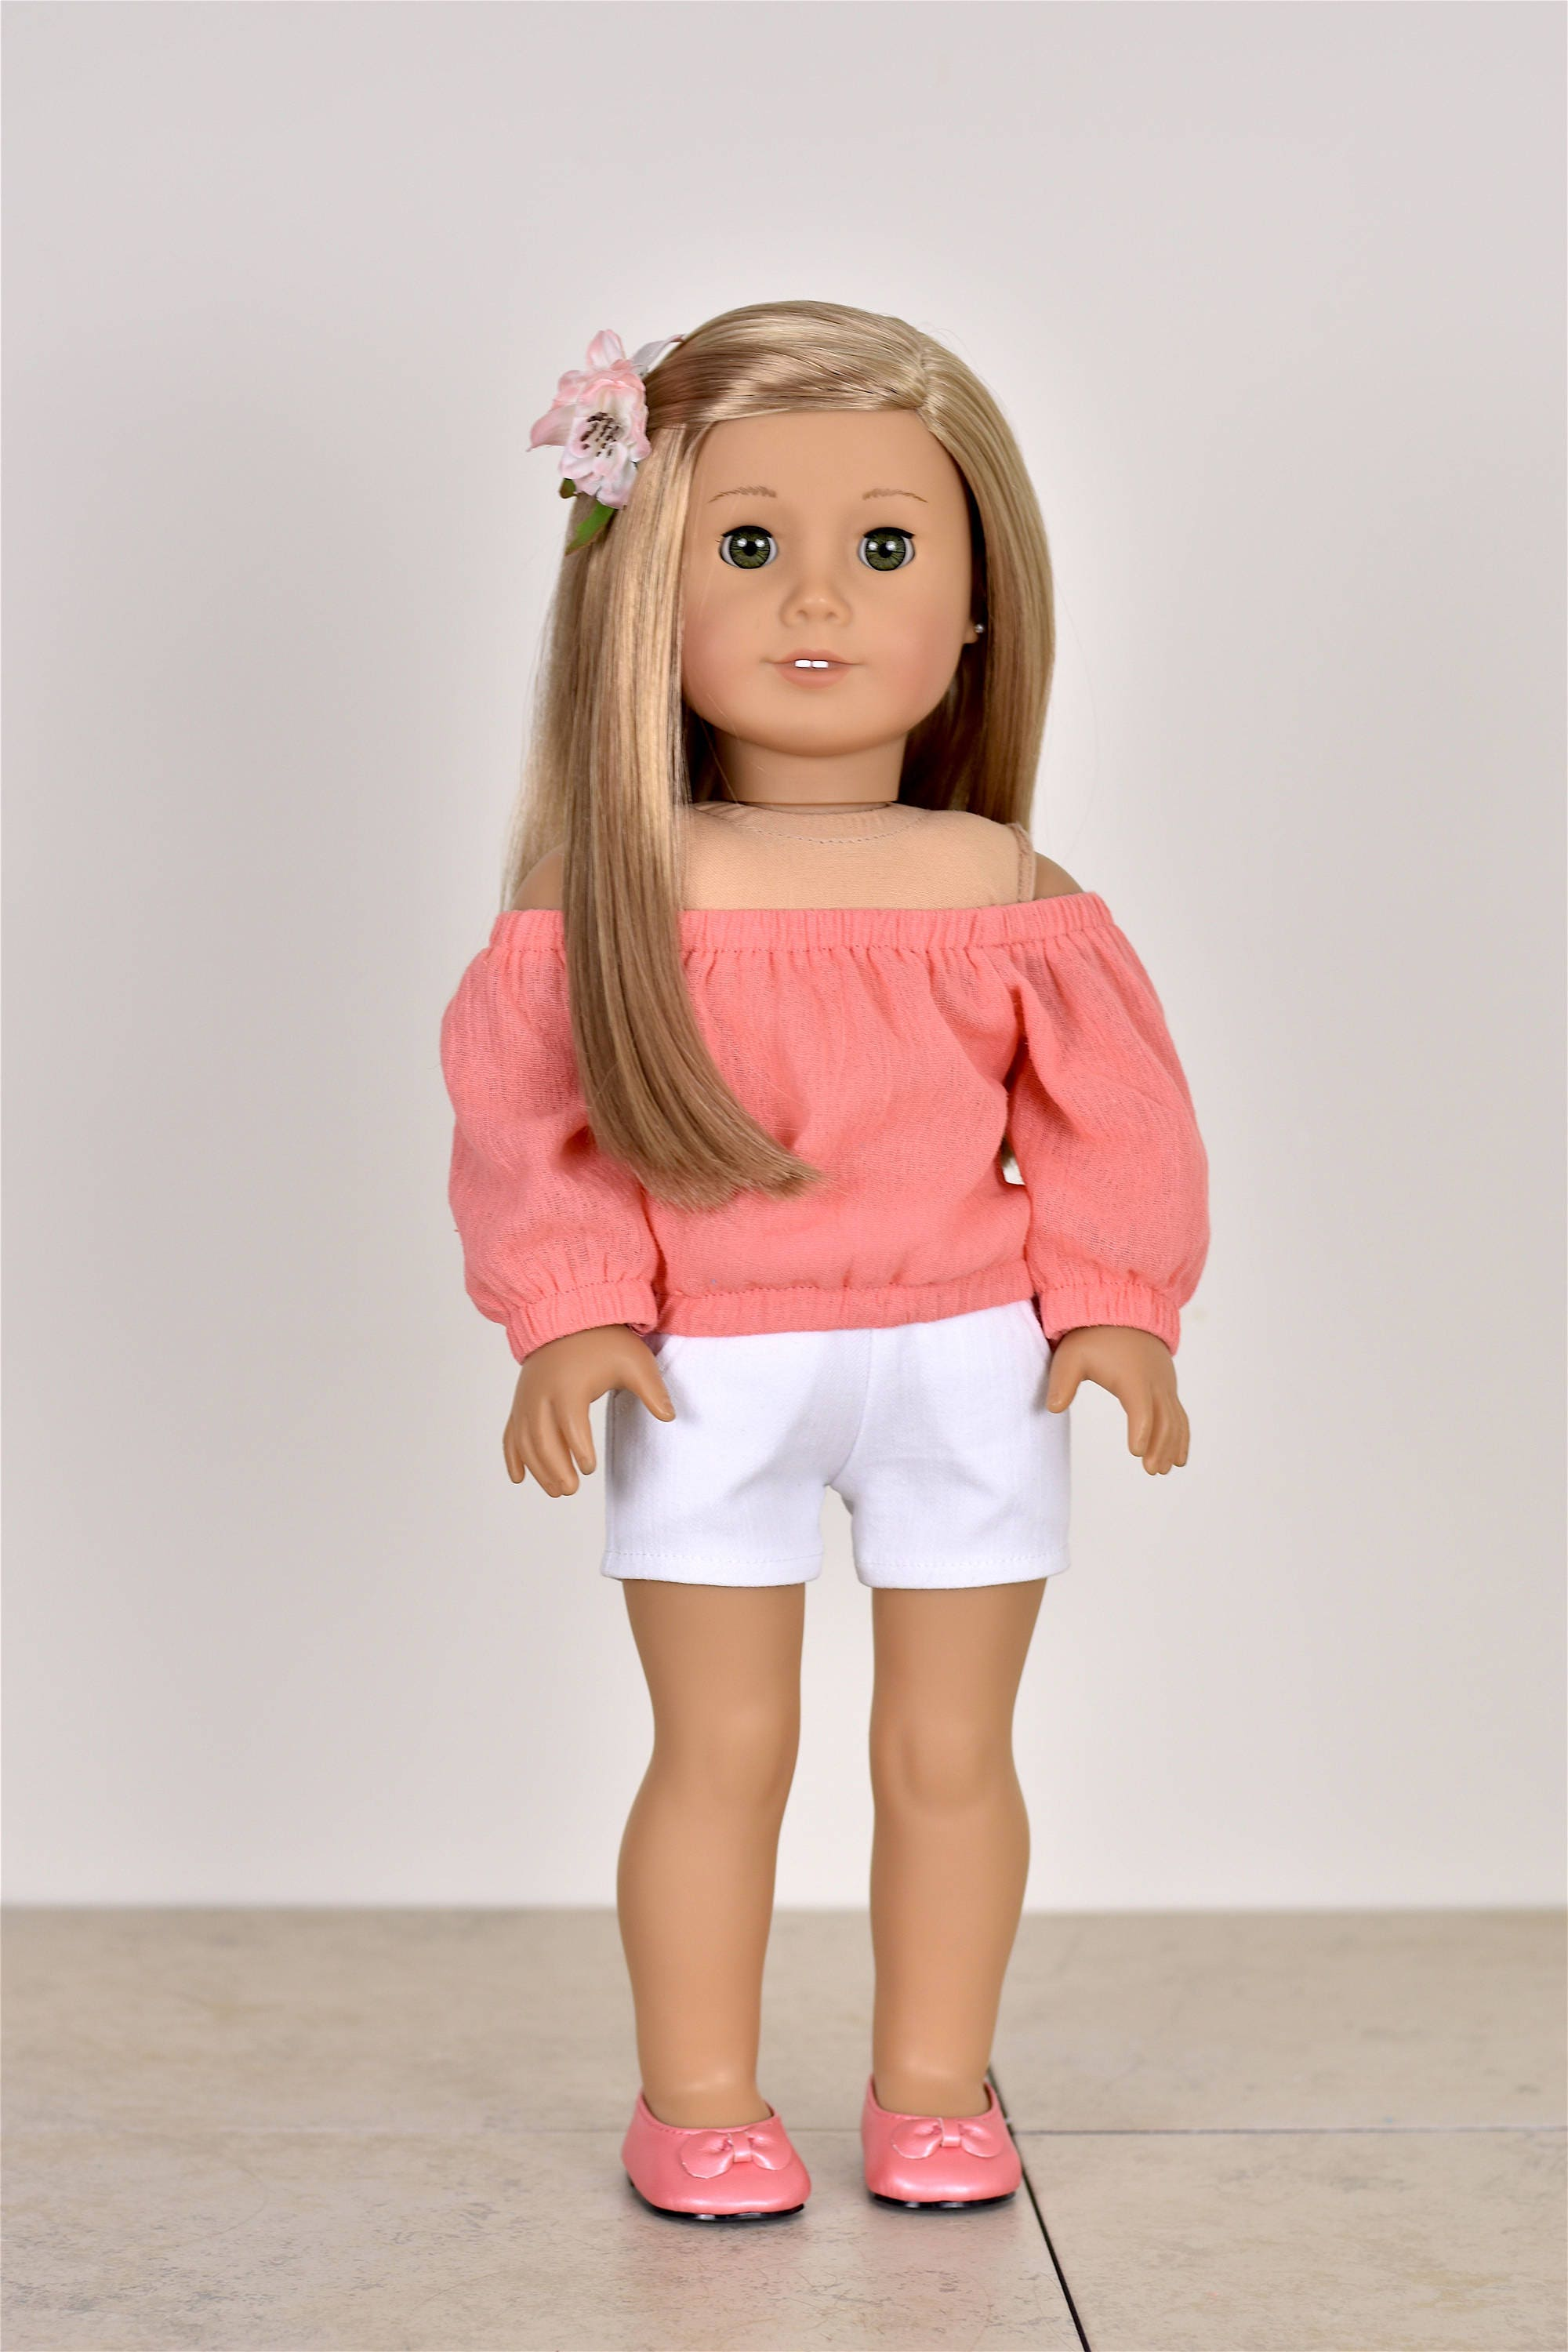 18 Best Best Gifts For 19 Year Old Girls Images On: Taylor Country Top 18 Inch Doll Clothes